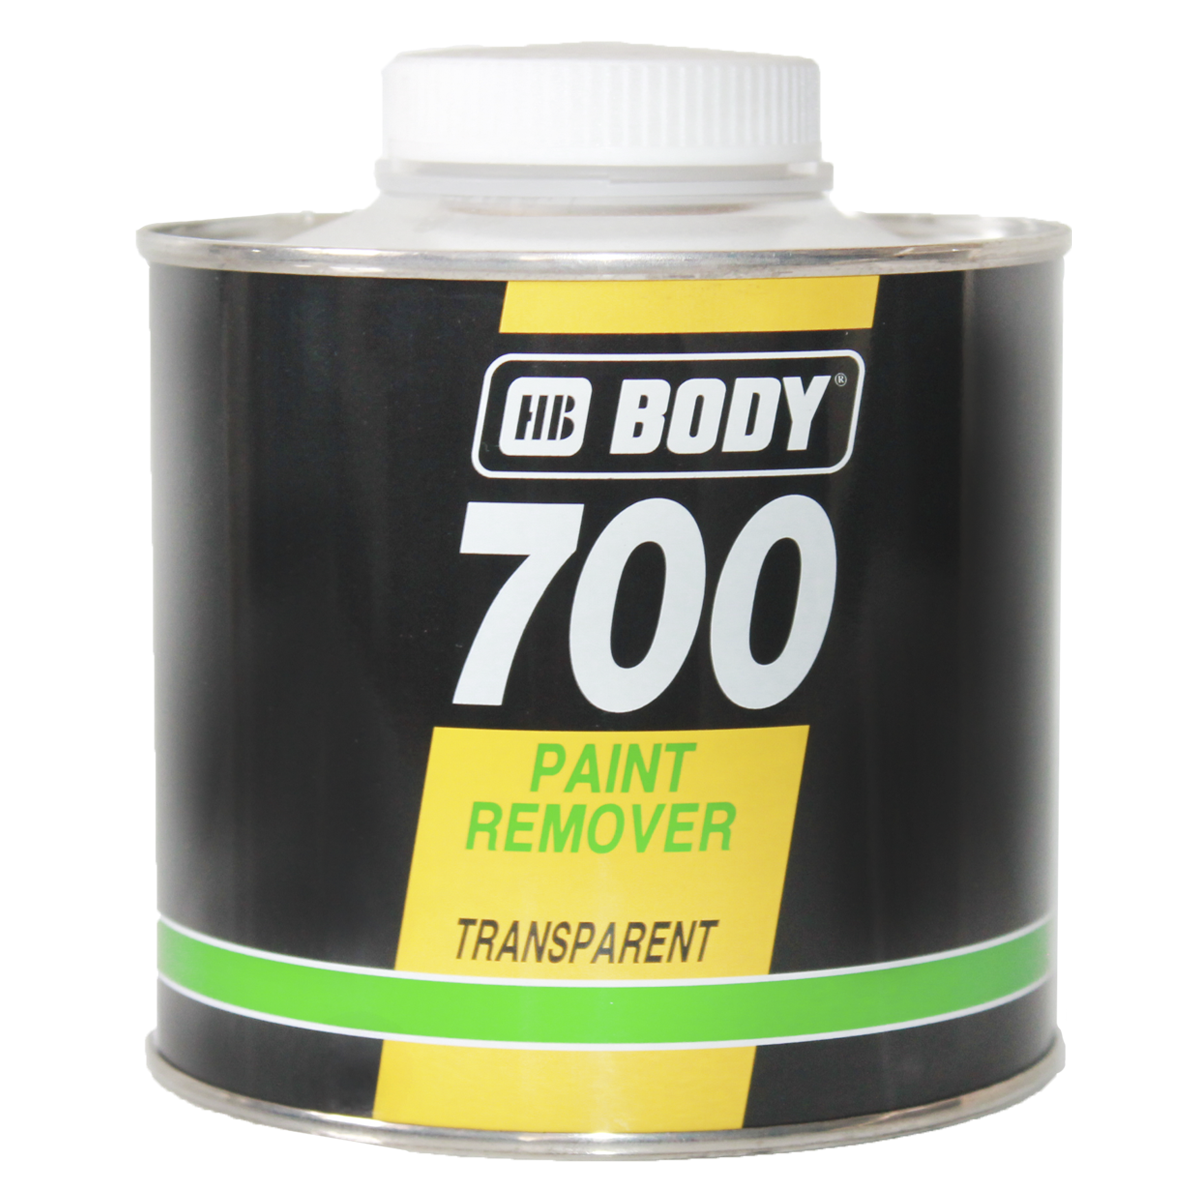 Kartex body 700 paint remover